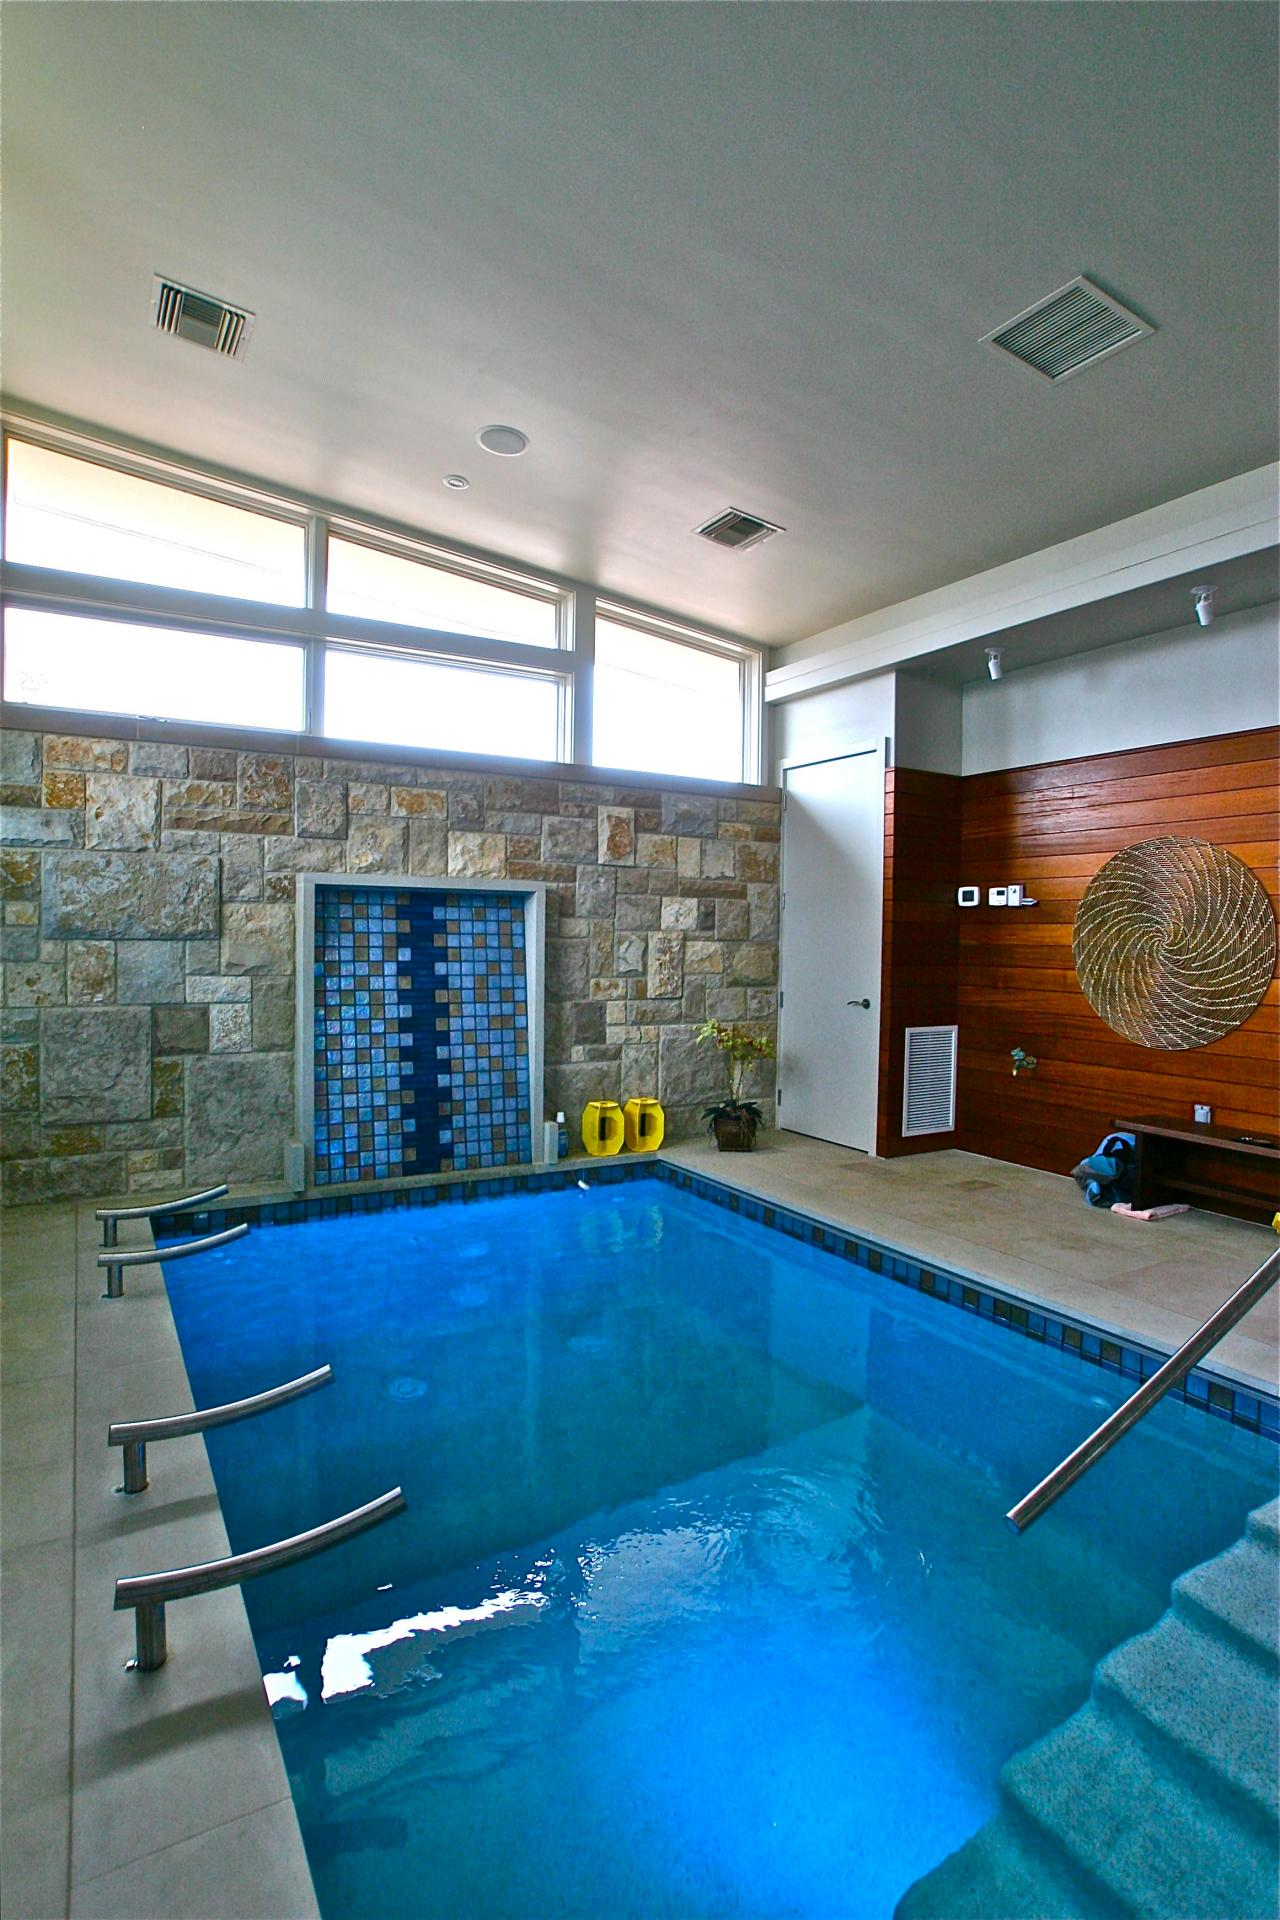 Awesome indoor swimming pool ideas 22